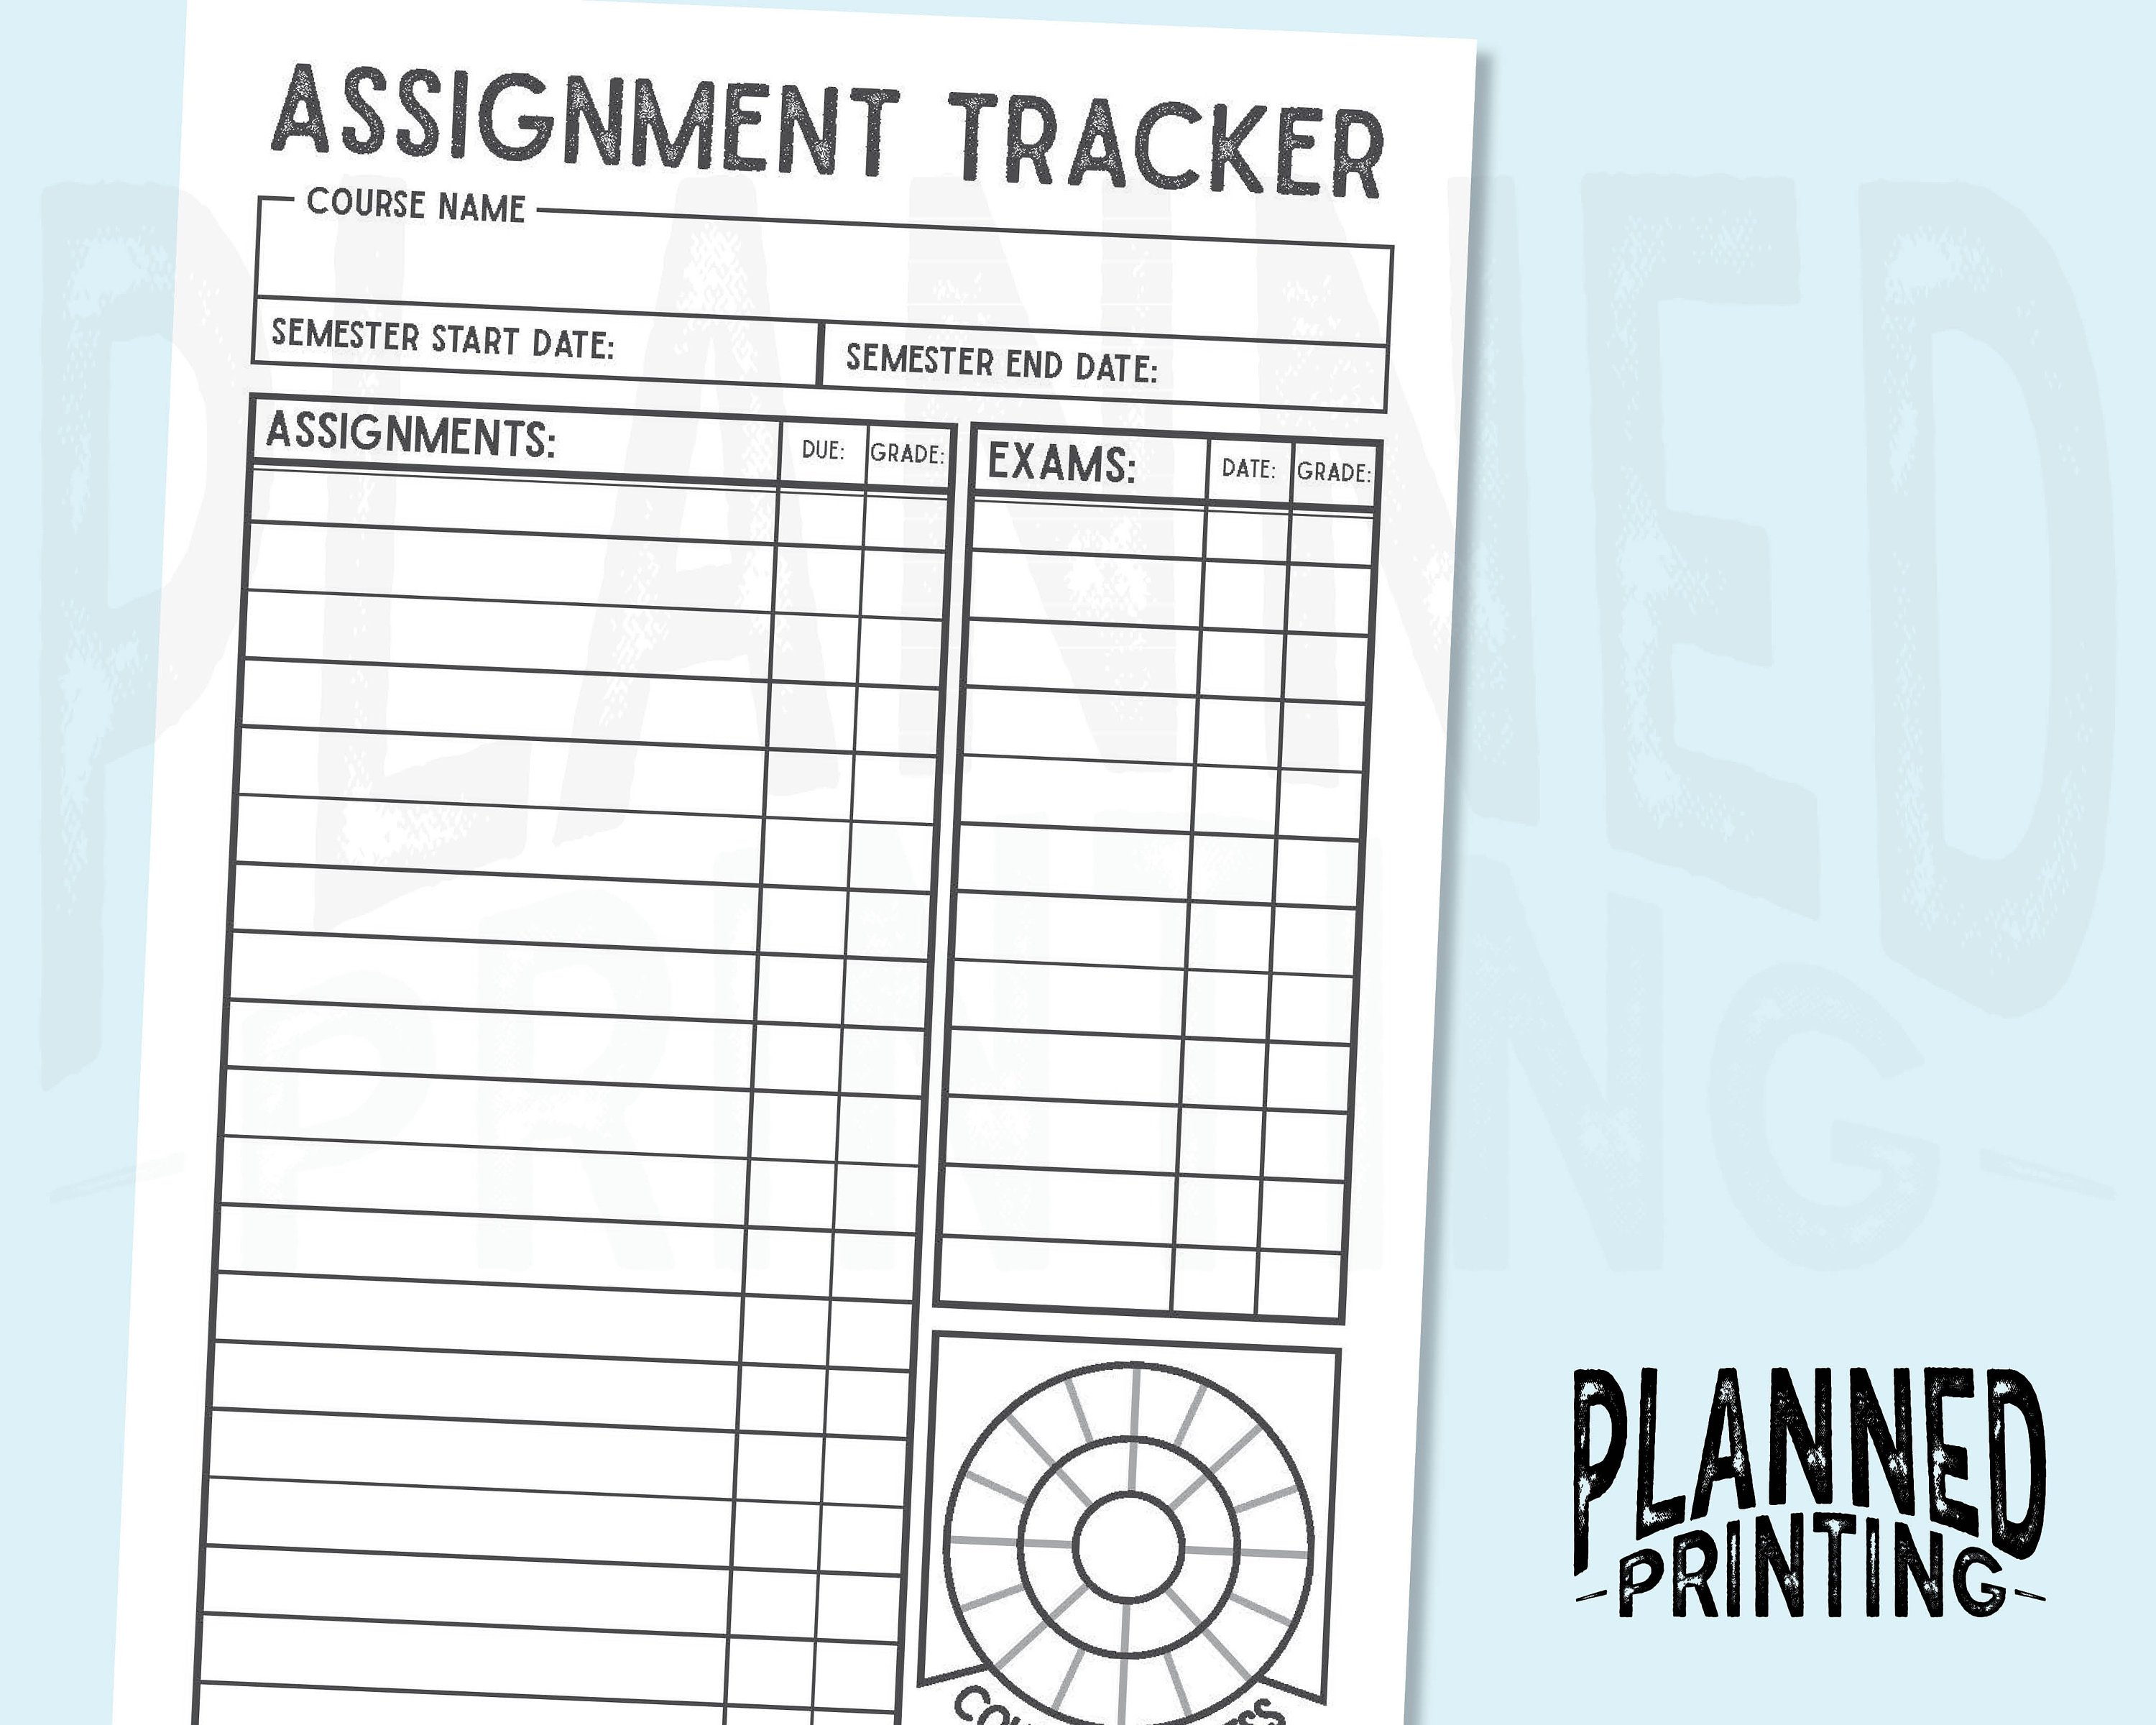 image regarding Grade Tracker Printable called A5 Semester Assignment Tracker Printable